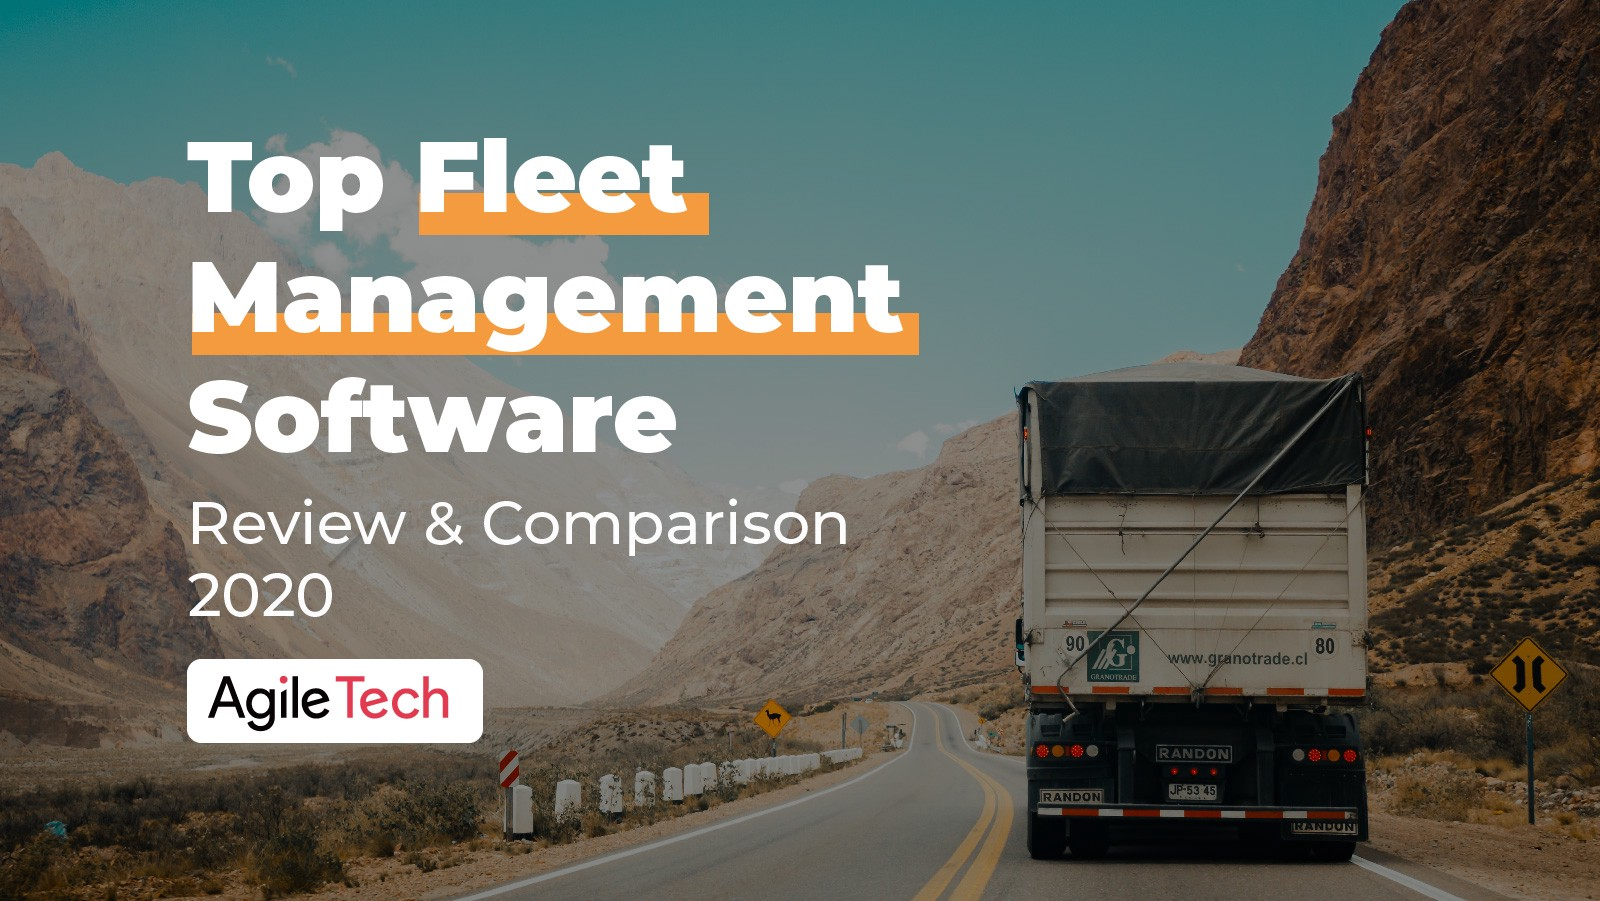 top fleet management software for small business in 2020 review and comparison